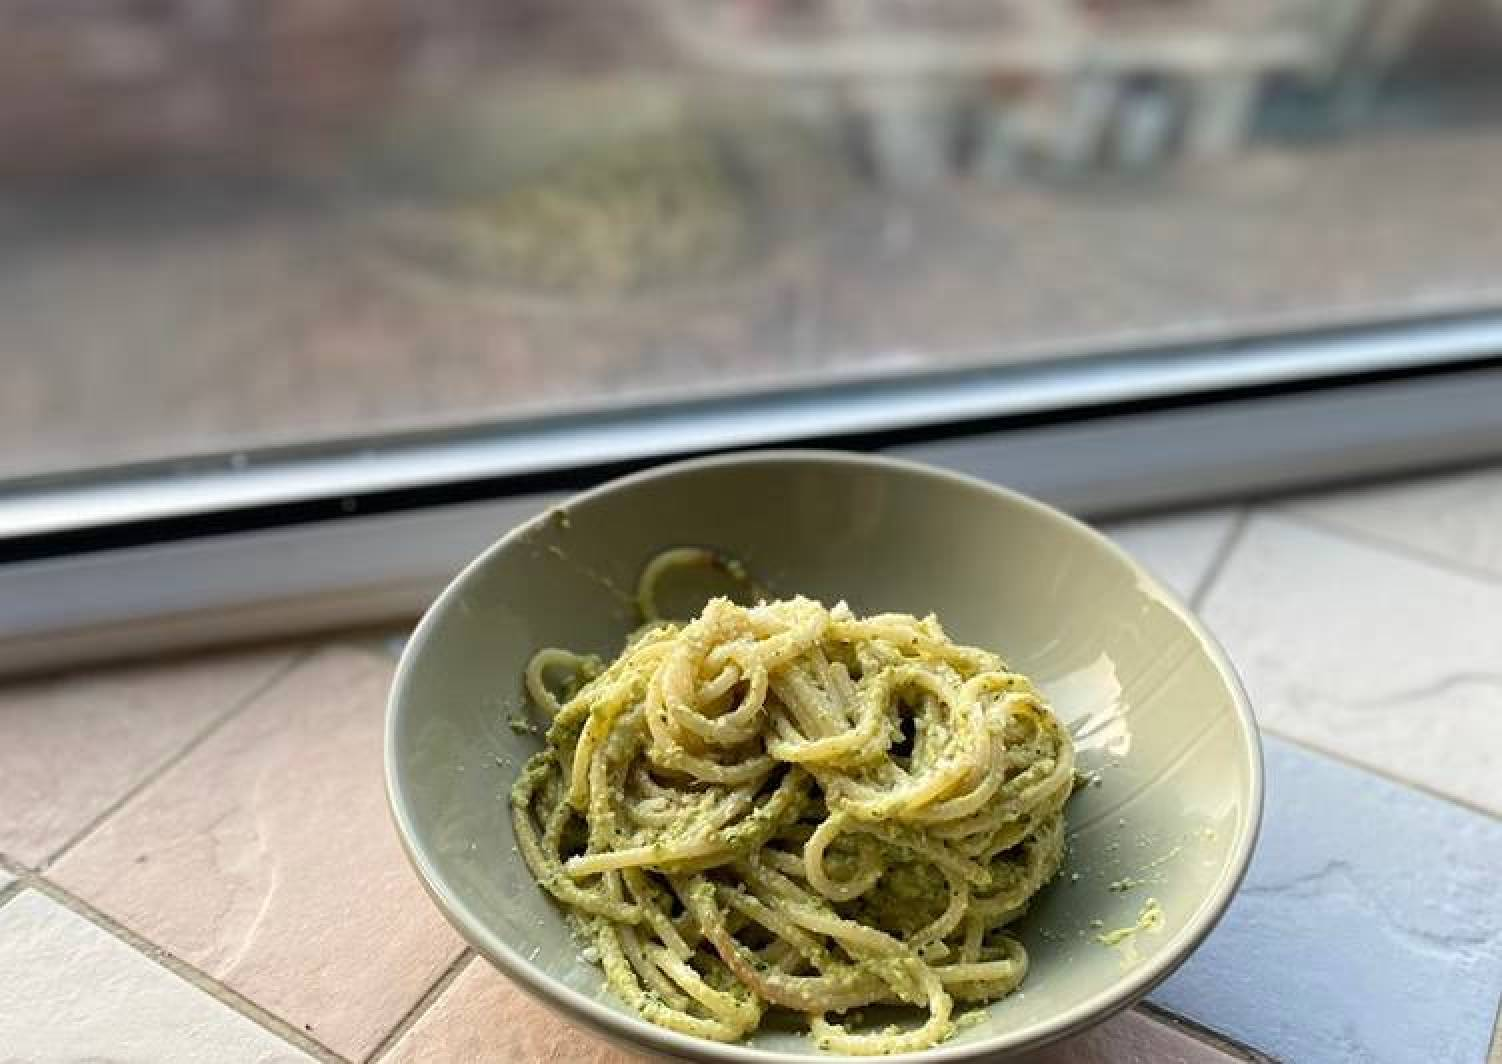 Experimental Apple Pesto Spaghetti